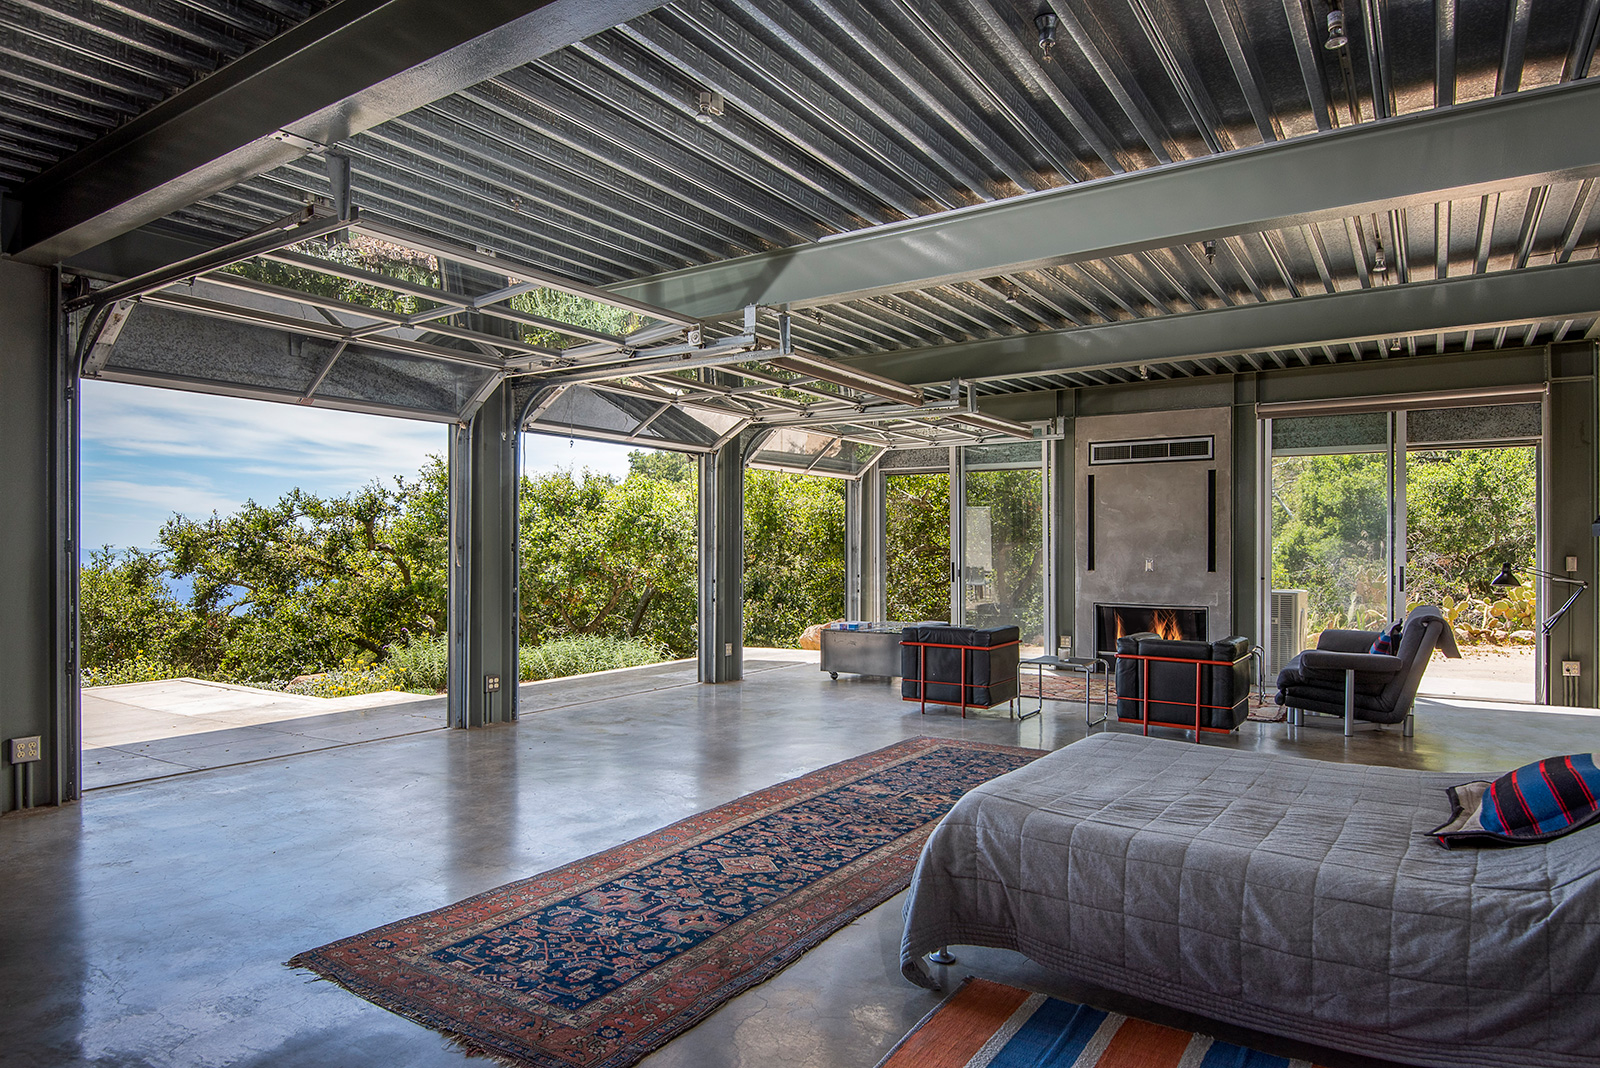 Concrete floors, steel beams, corrugated ceilings and rolling steel-framed doors feature inside the industrial style Barton Myers Residence, for sale in Santa Barbara via Sotheby's International